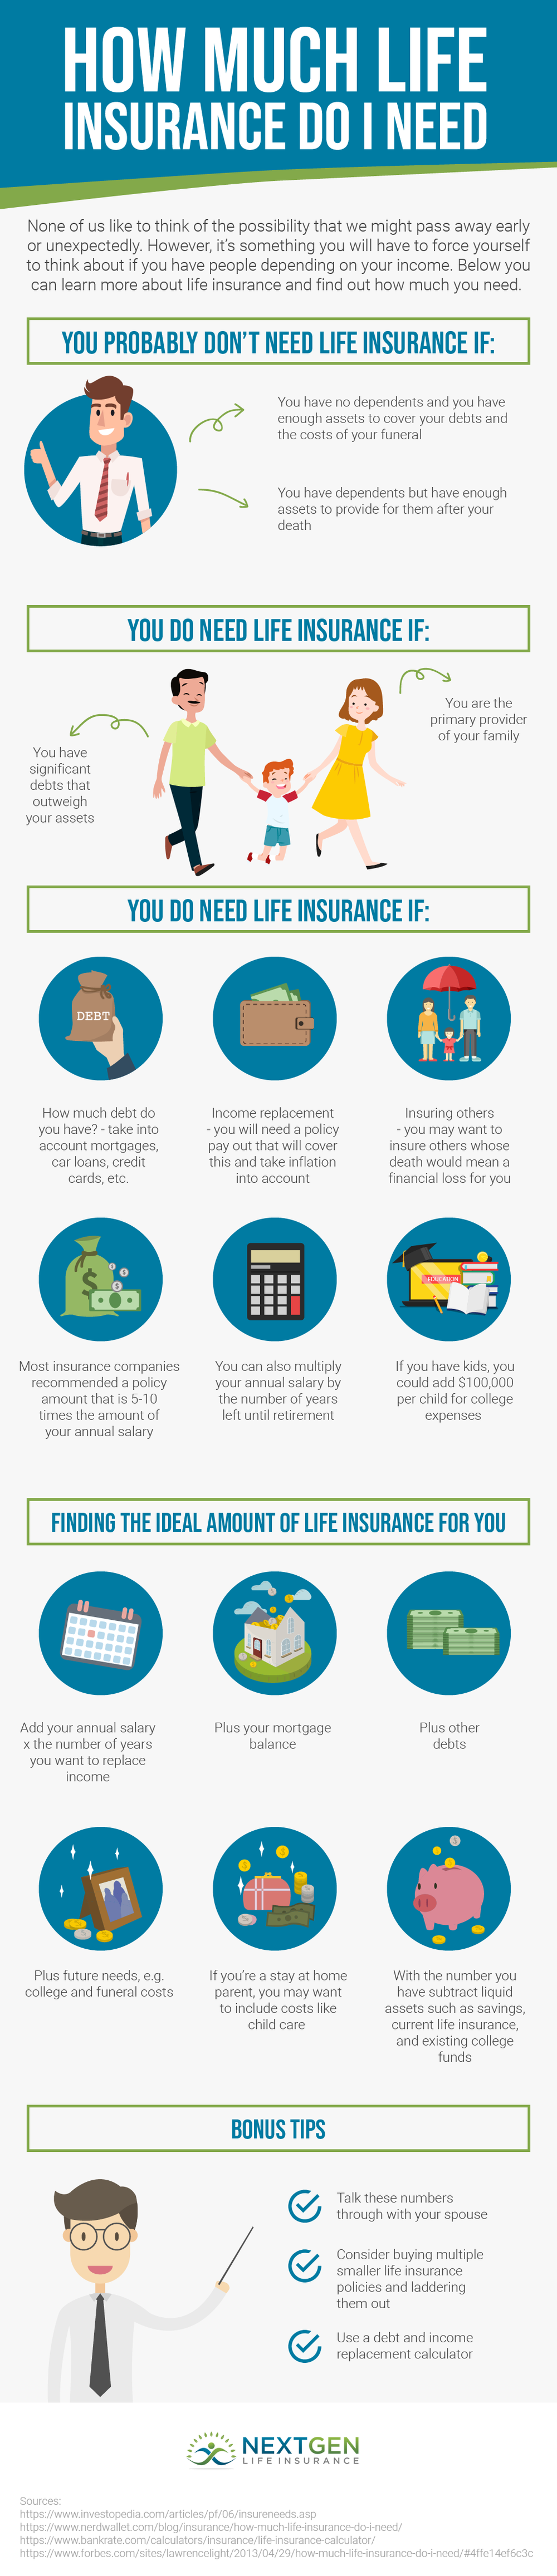 Infographic Design By  Do I need life insurance